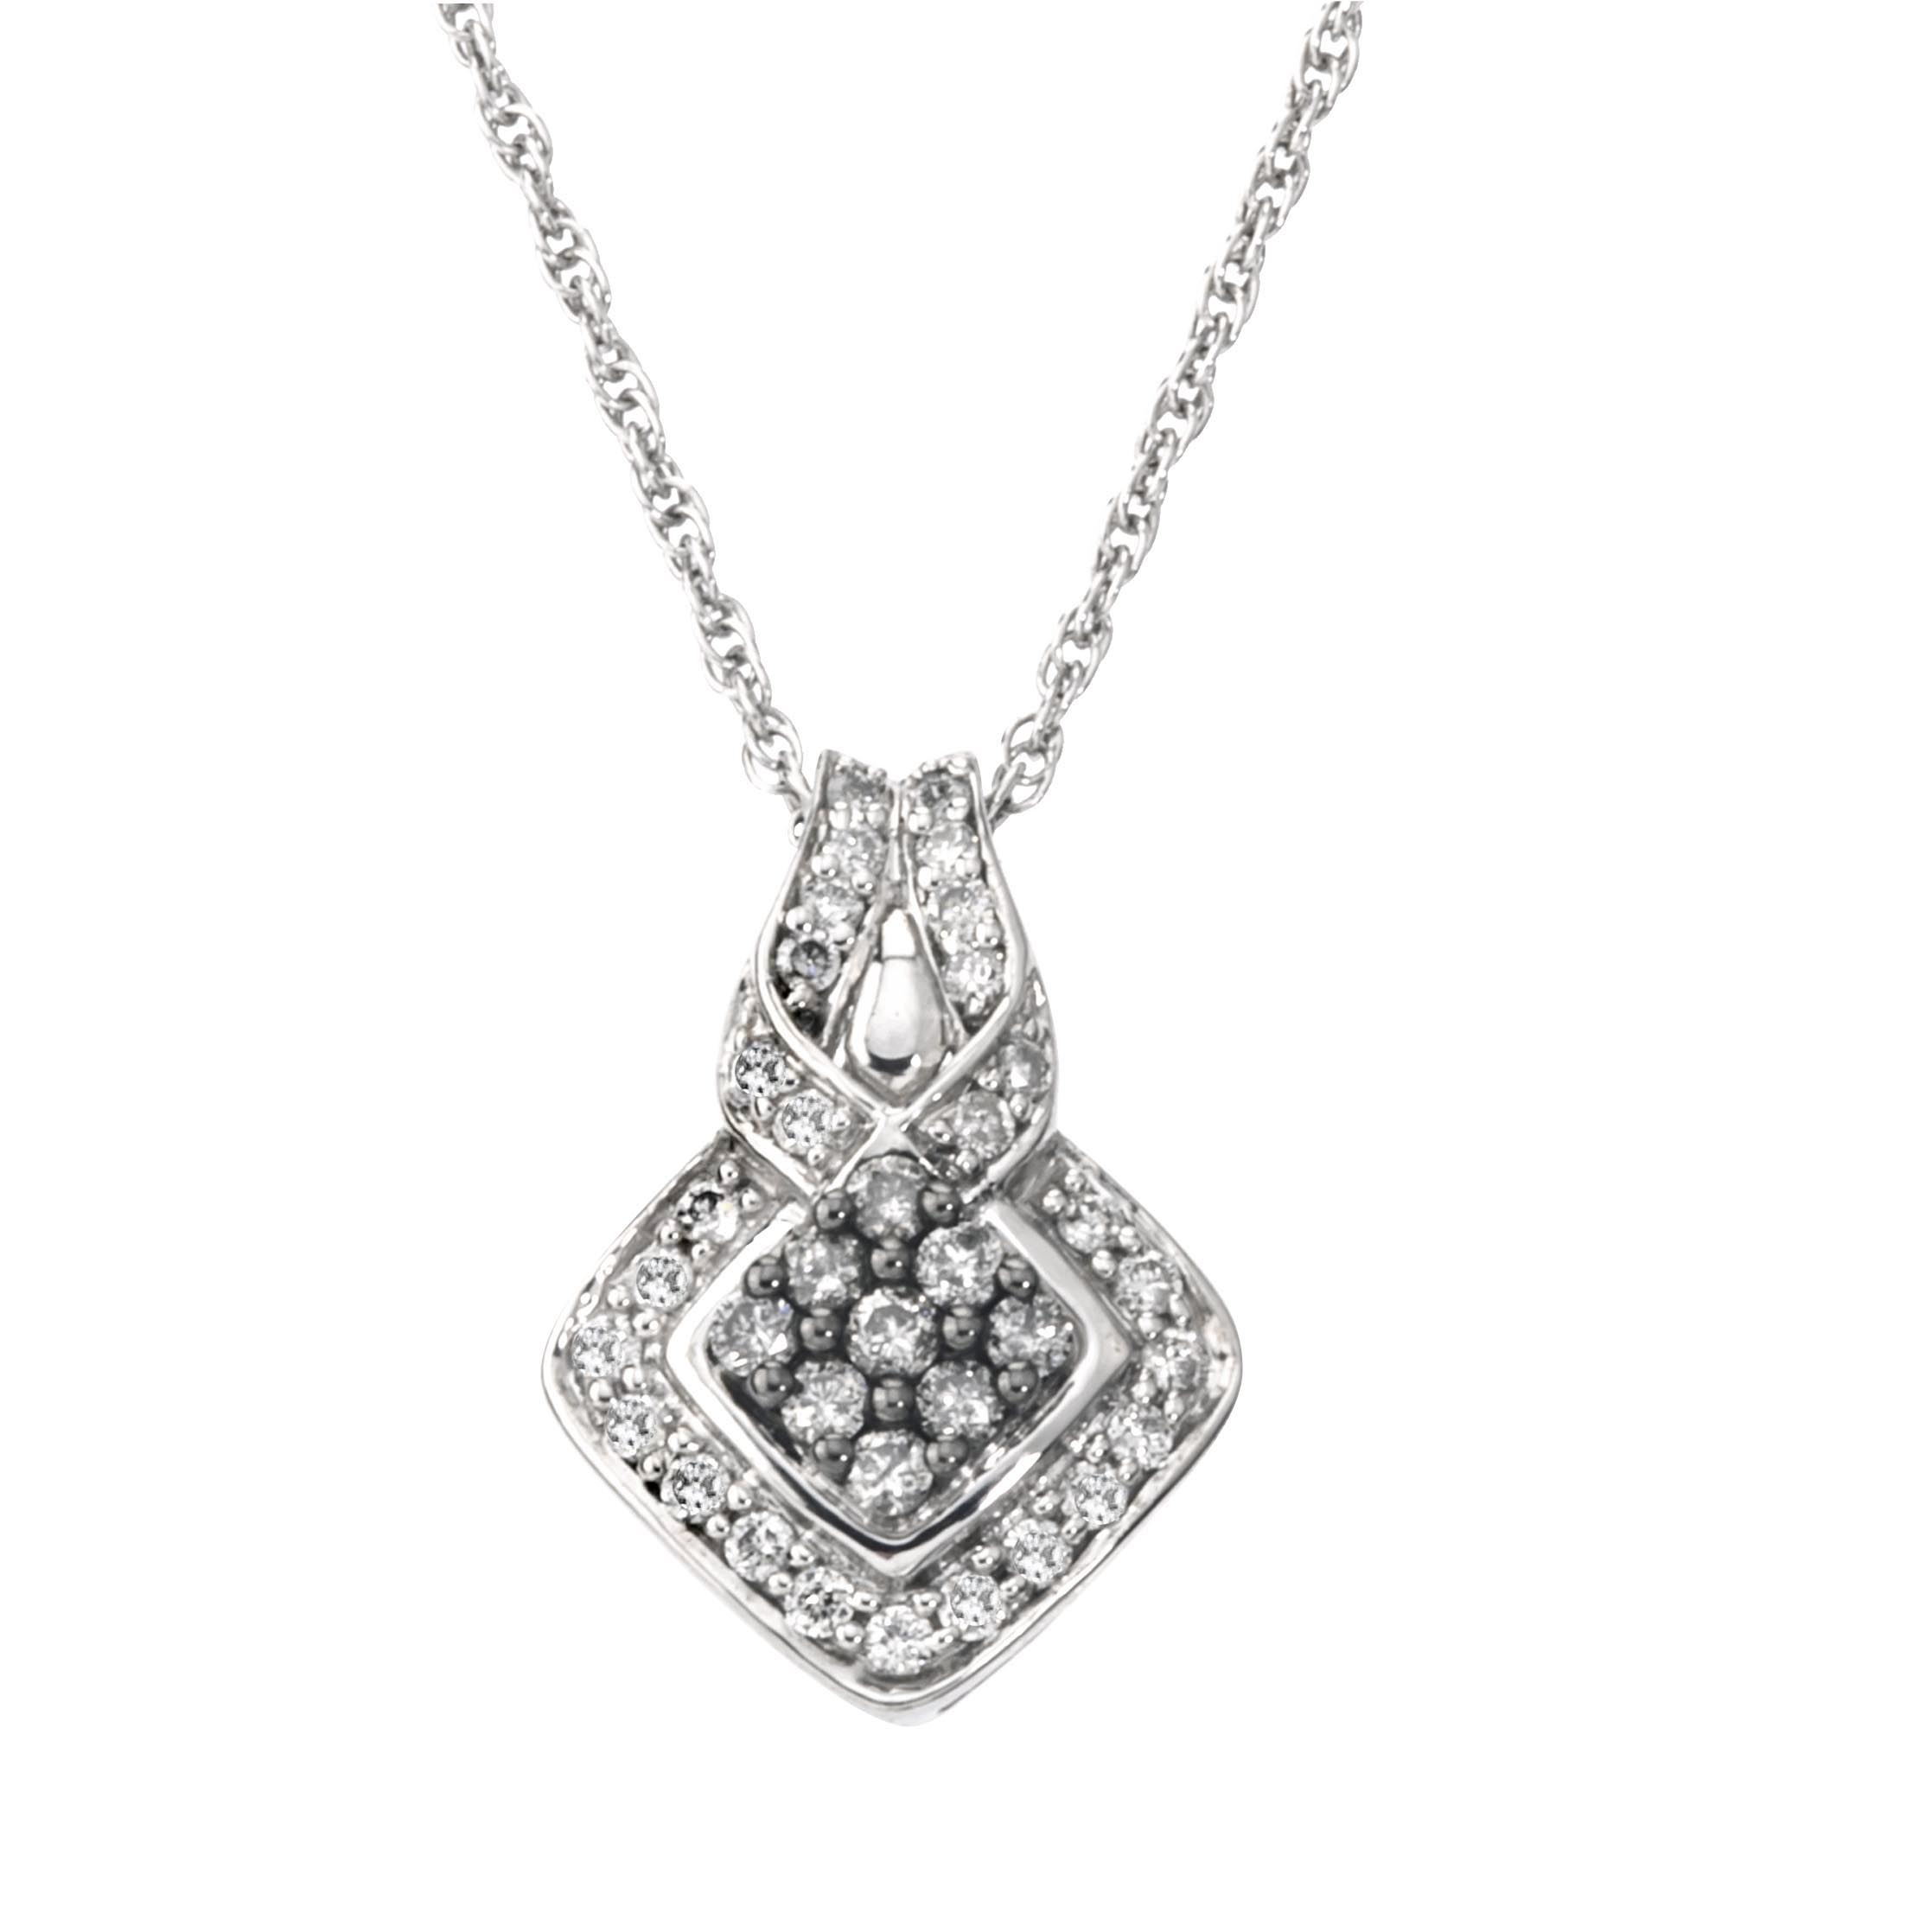 Diamond Tie Knot Necklace in Sterling Silver (0.50 cts, H-I I2,Grey Diamonds) by Diamond Direct LLC